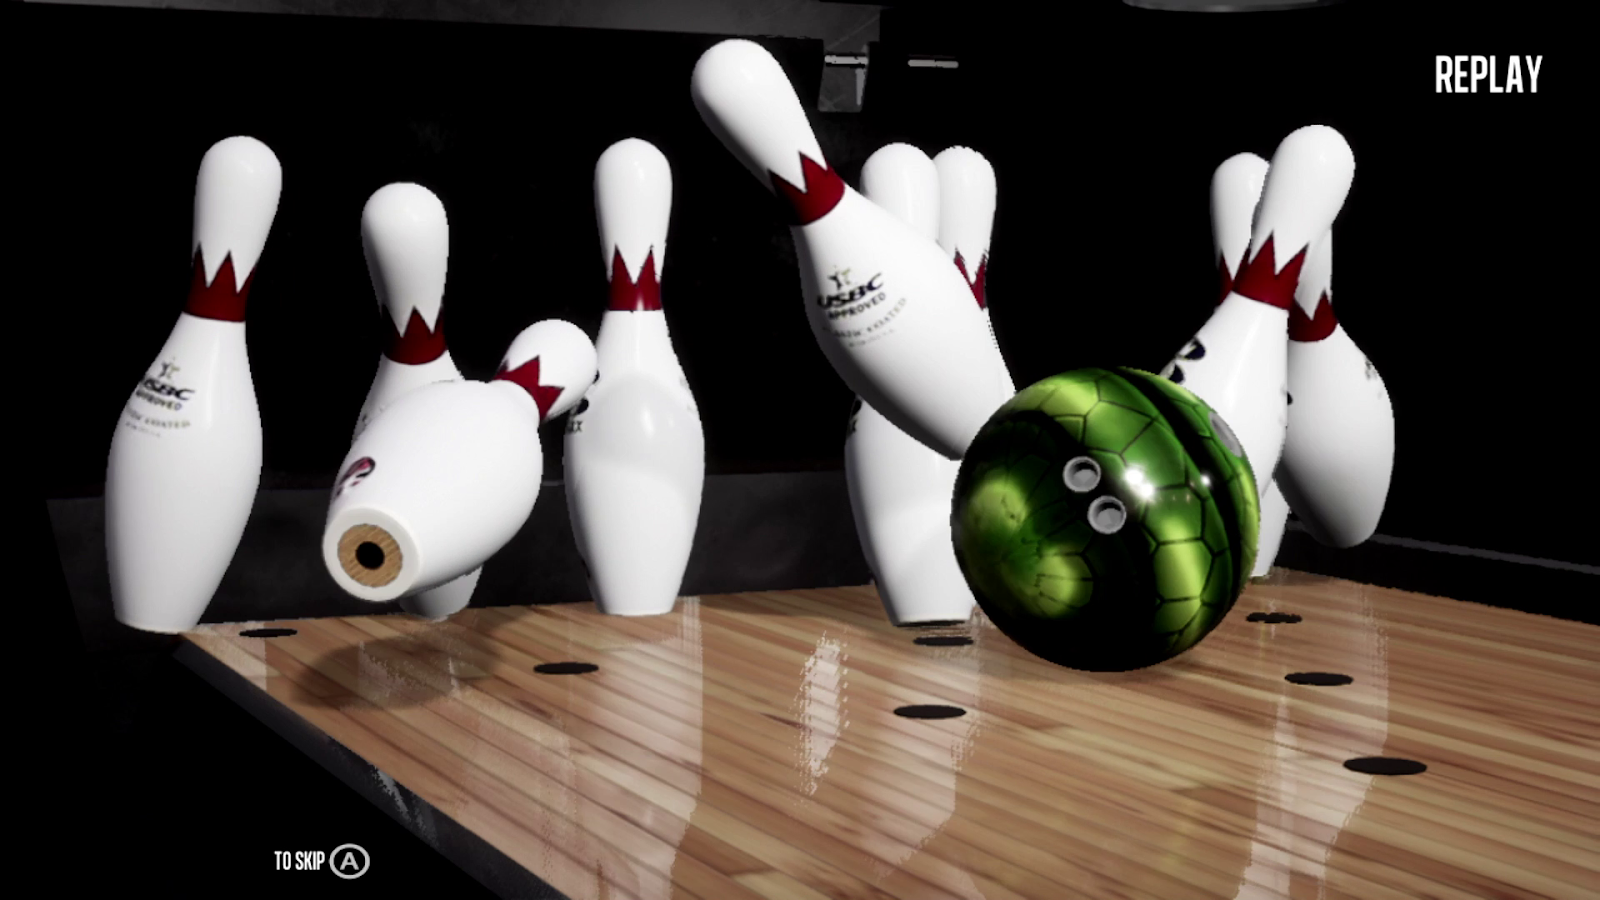 Pba Pro Bowling Review Switch Thefamicast Com Japan Based Nintendo Podcasts Videos Reviews